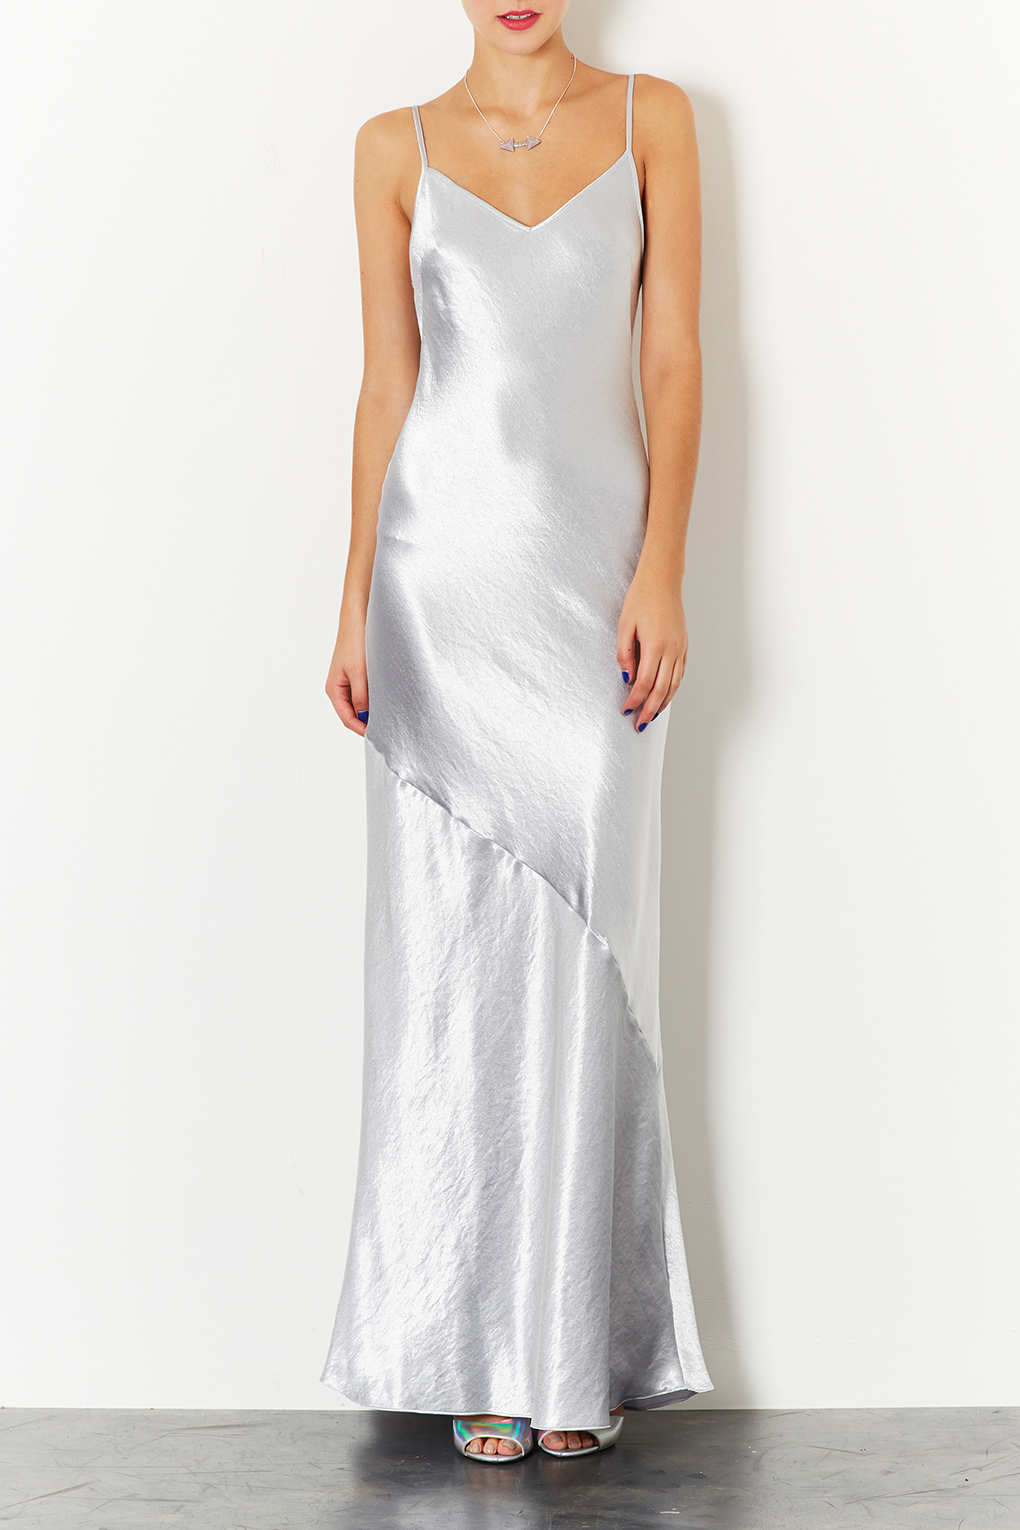 TOPSHOP Strappy Satin Maxi Dress in Metallic - Lyst 53cf6cf21